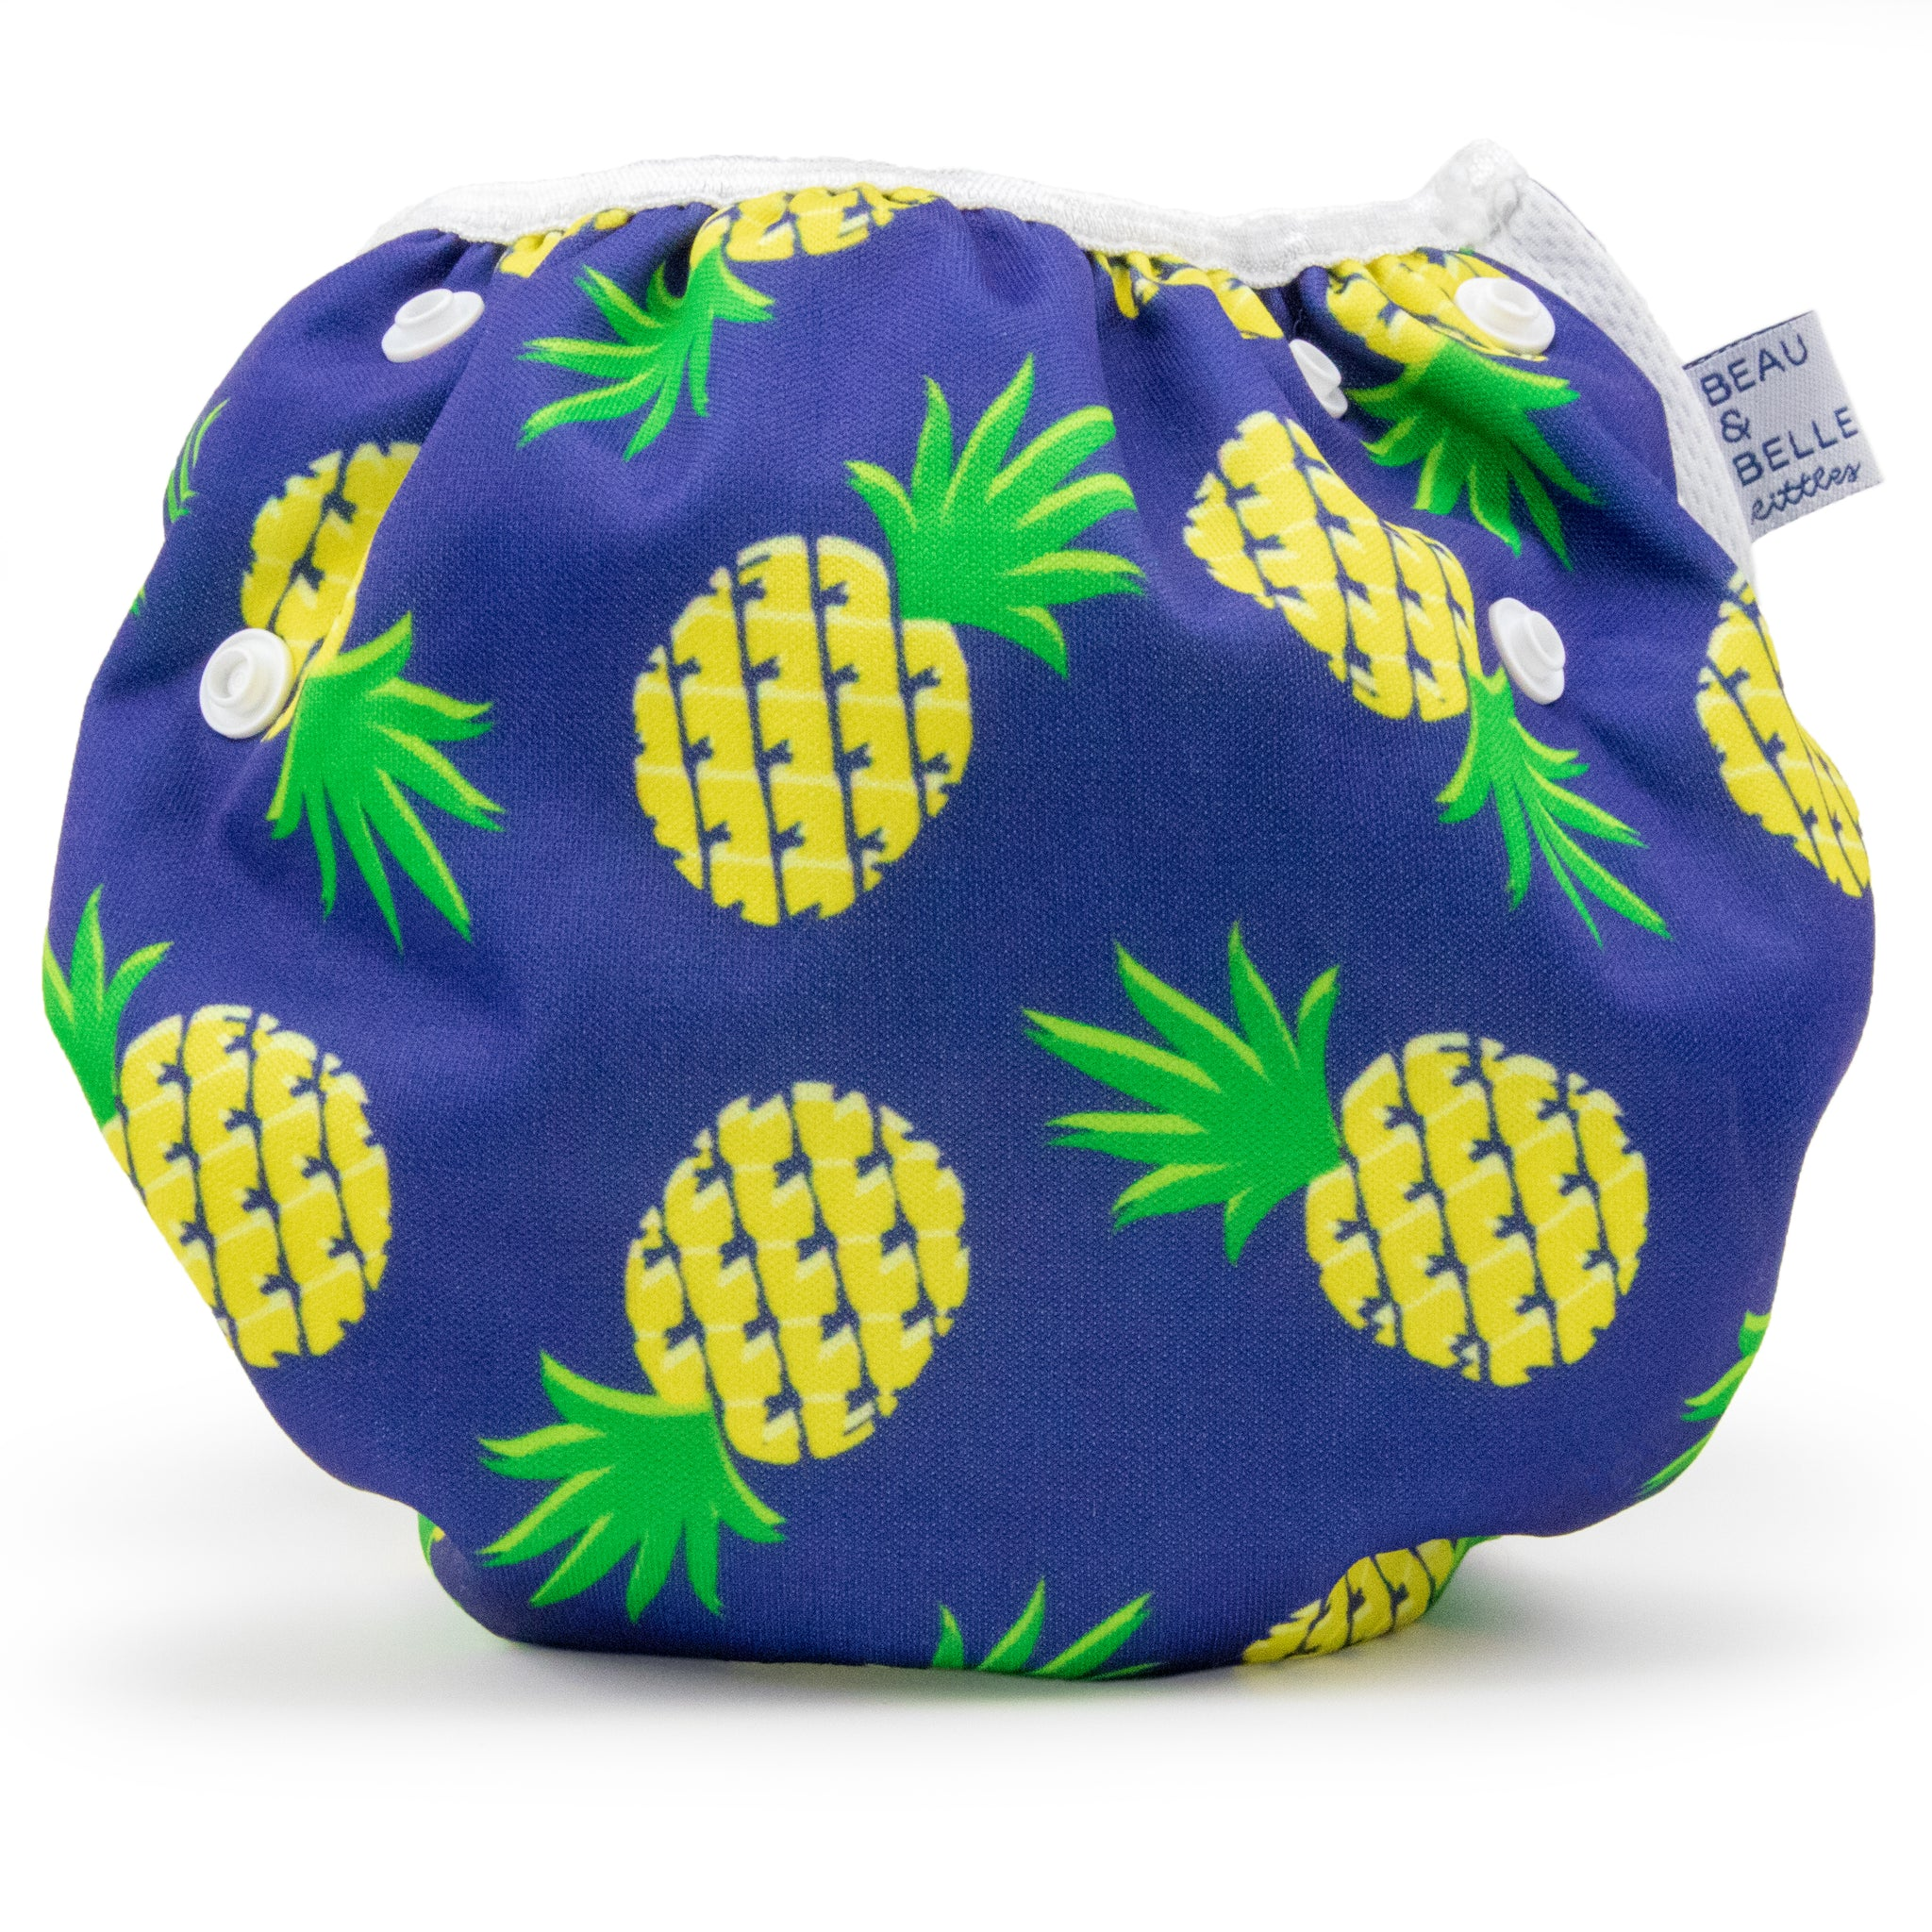 Beau and Belle Littles Swim Diaper, Regular Size, Navy blue with pineapples